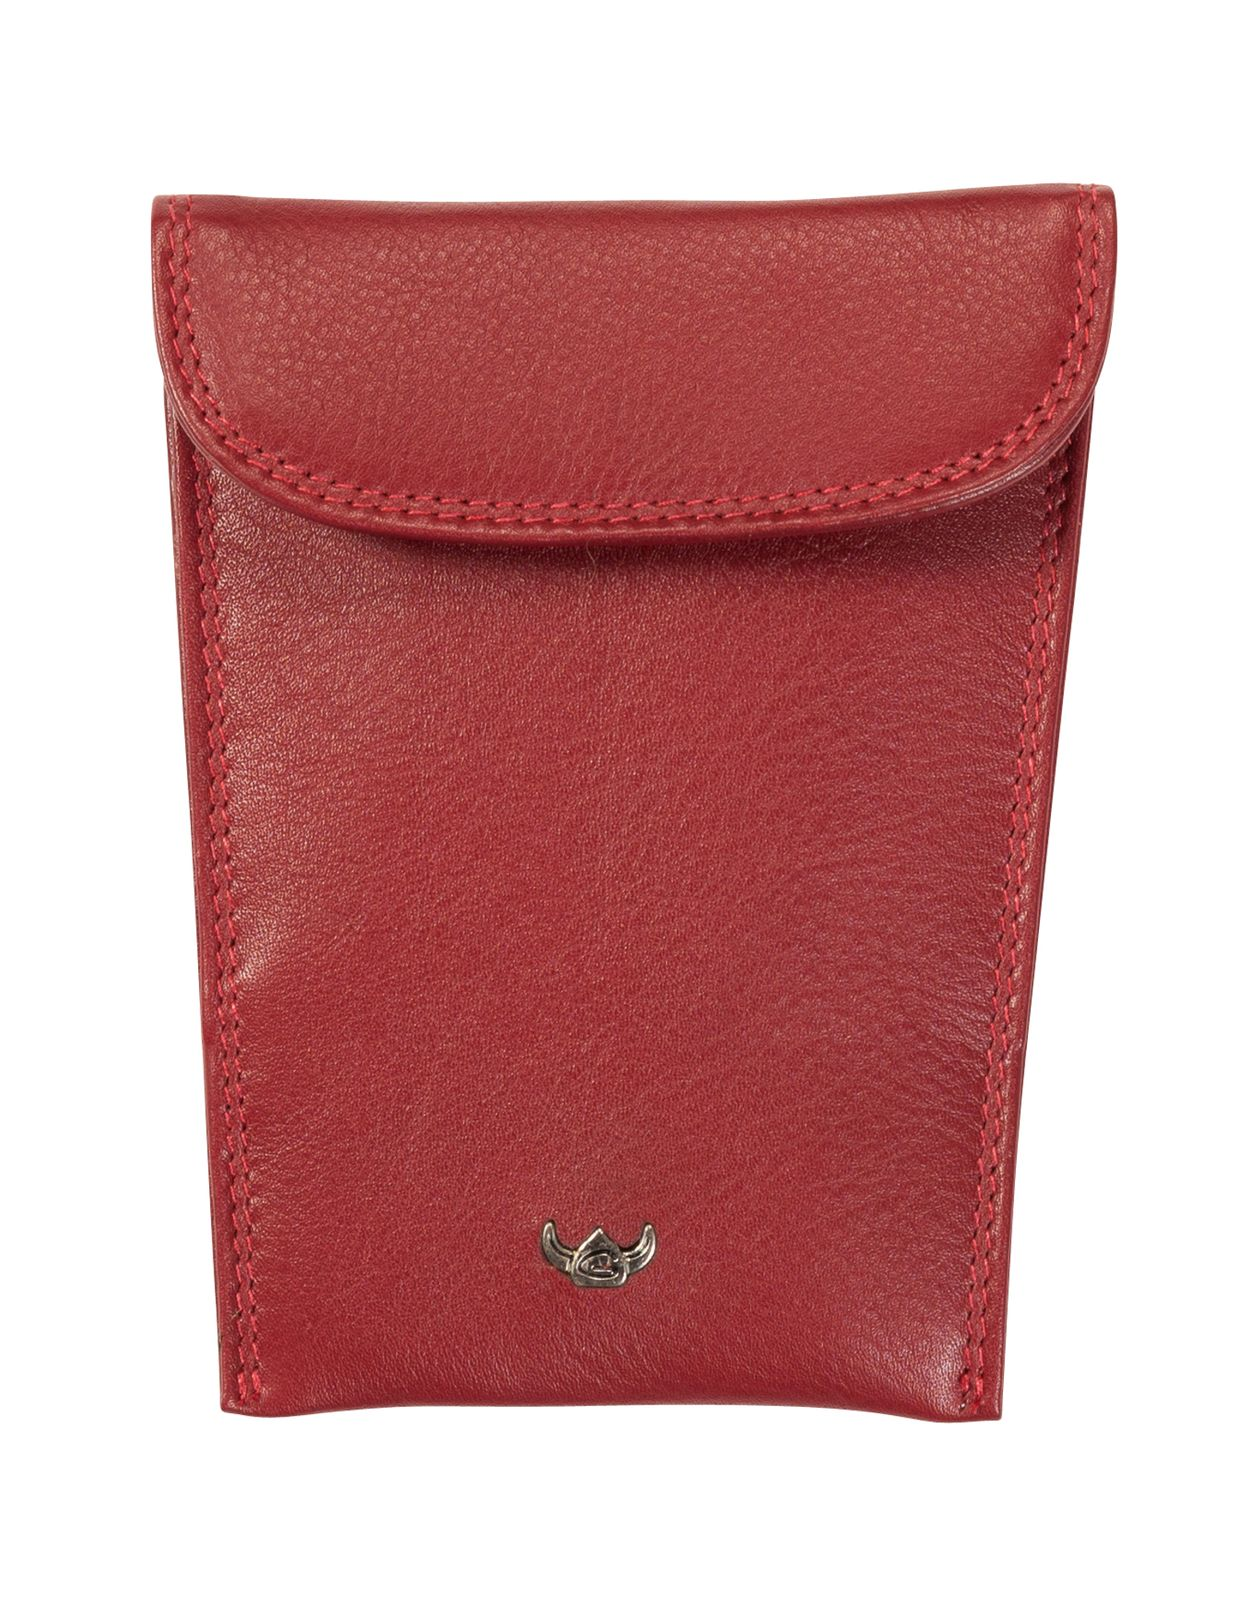 Golden Head Polo RFID Protect Key Case Red